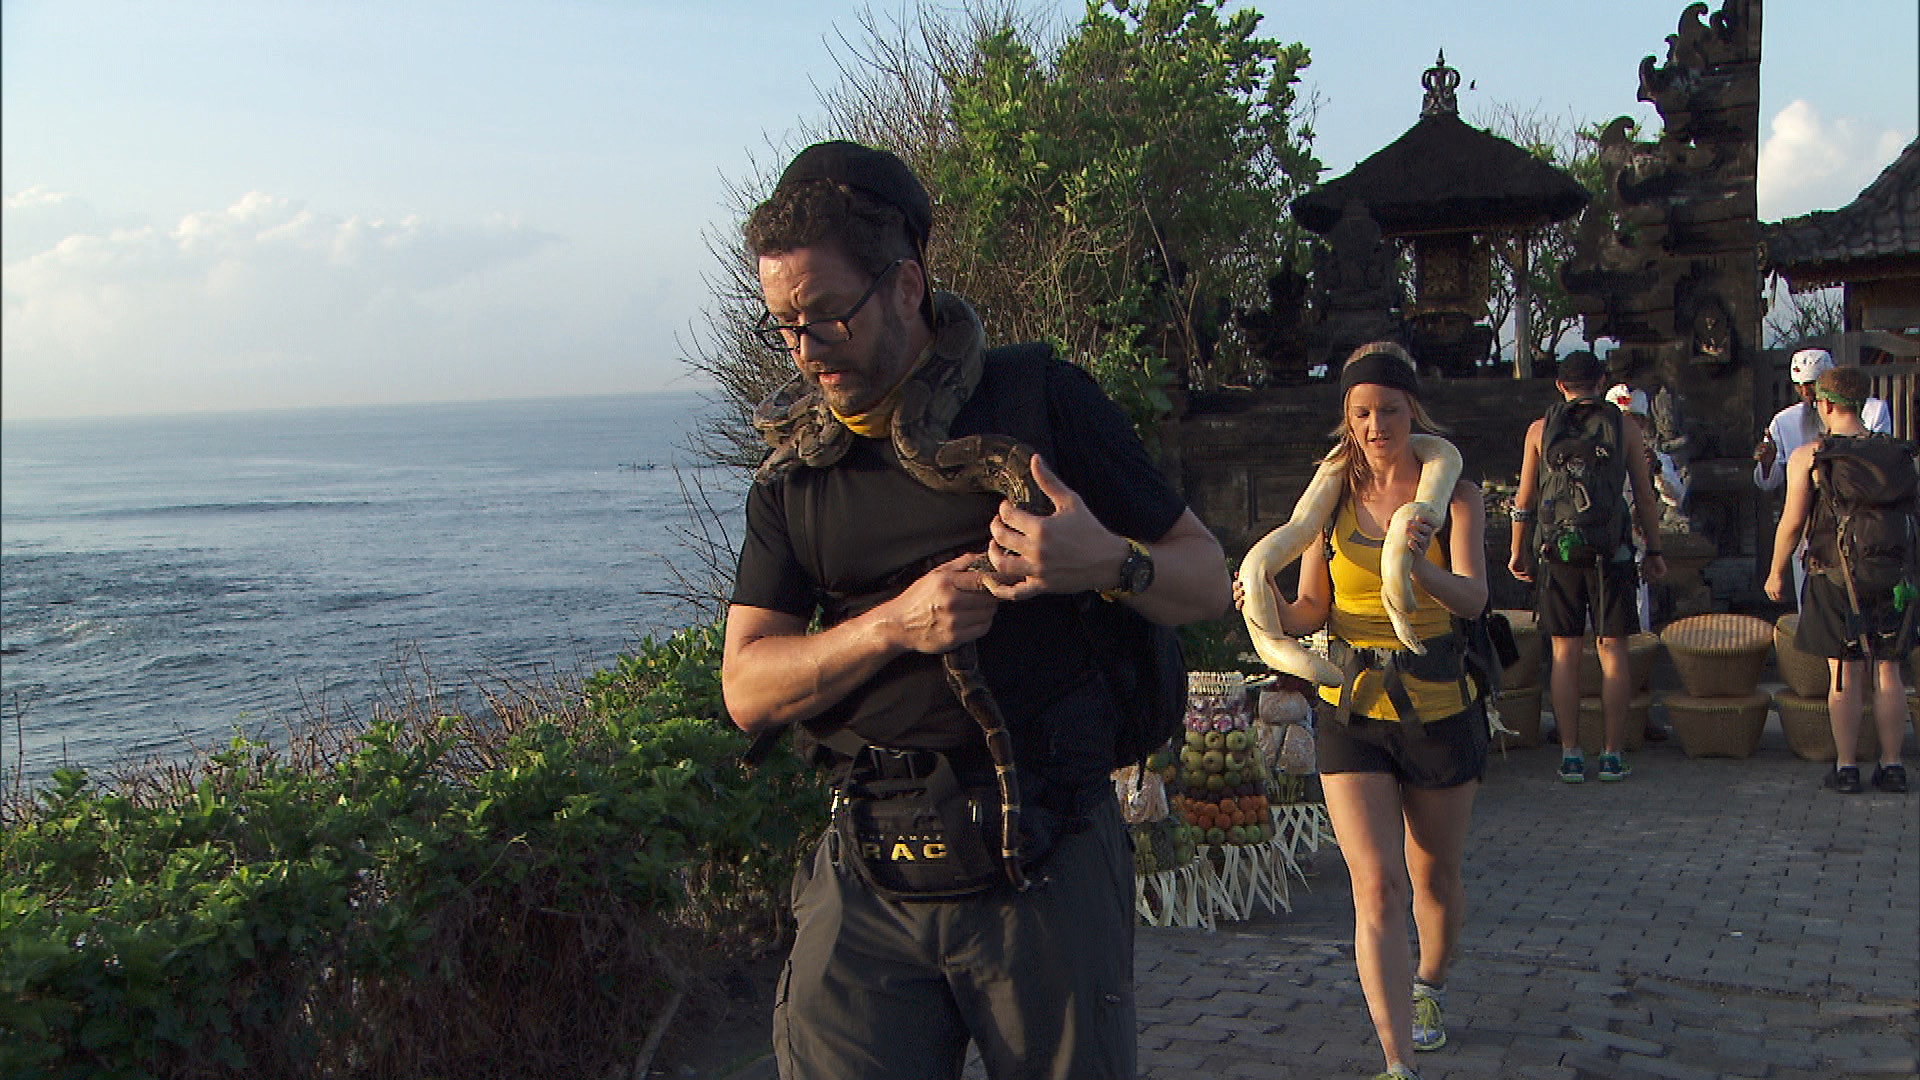 Burnie and Ashley try to move quickly while donning snakes around their necks.